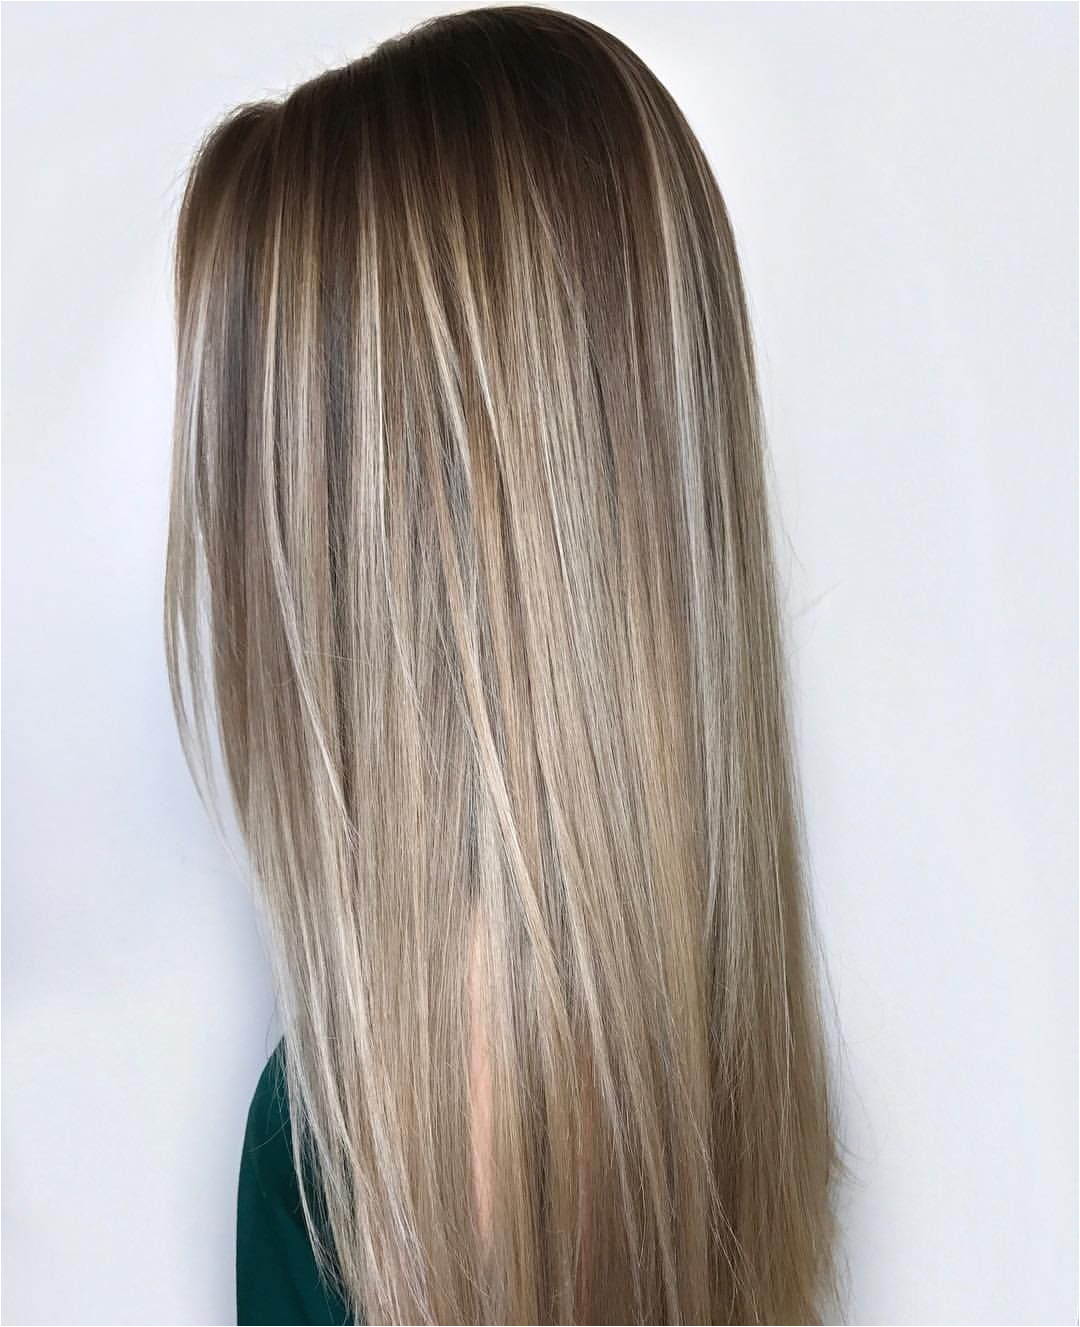 From all over sandy blonde hair to strategically placed balayage highlights these sandy blonde hairstyles will give you lighter locks that look chic and